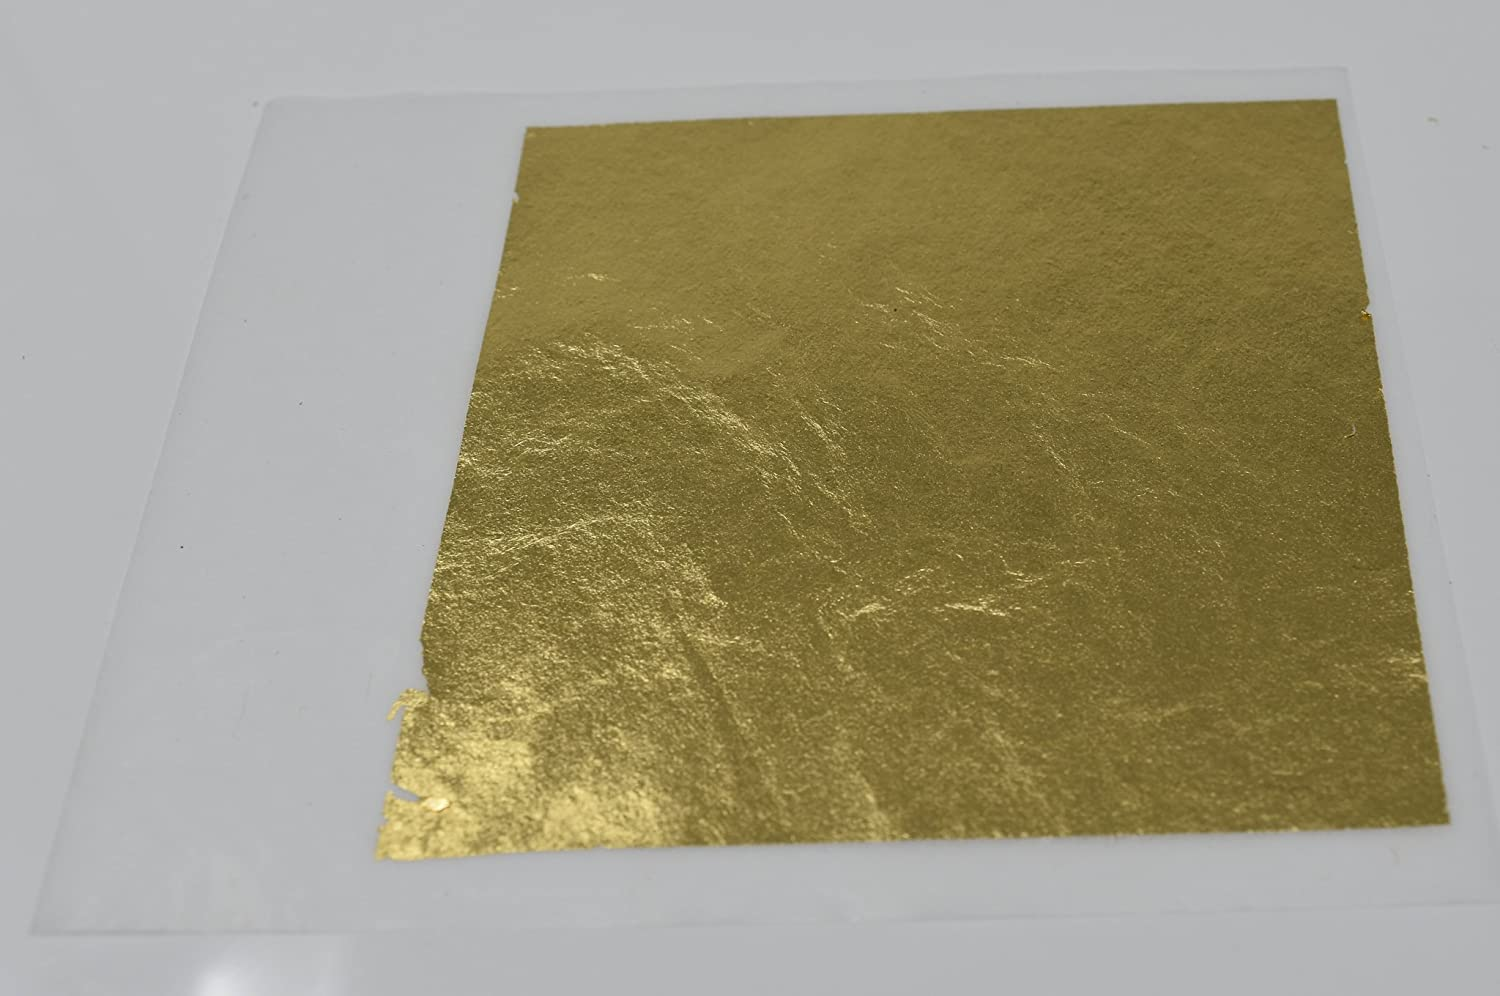 10 Sheets per Book 15 in 24 Karat Edible Gold Leaf Firm Transfer Sheets by Slofoodgroup Hard Press Transfer Sheets Hard Press Transfer Sheets 3.15 in by 3